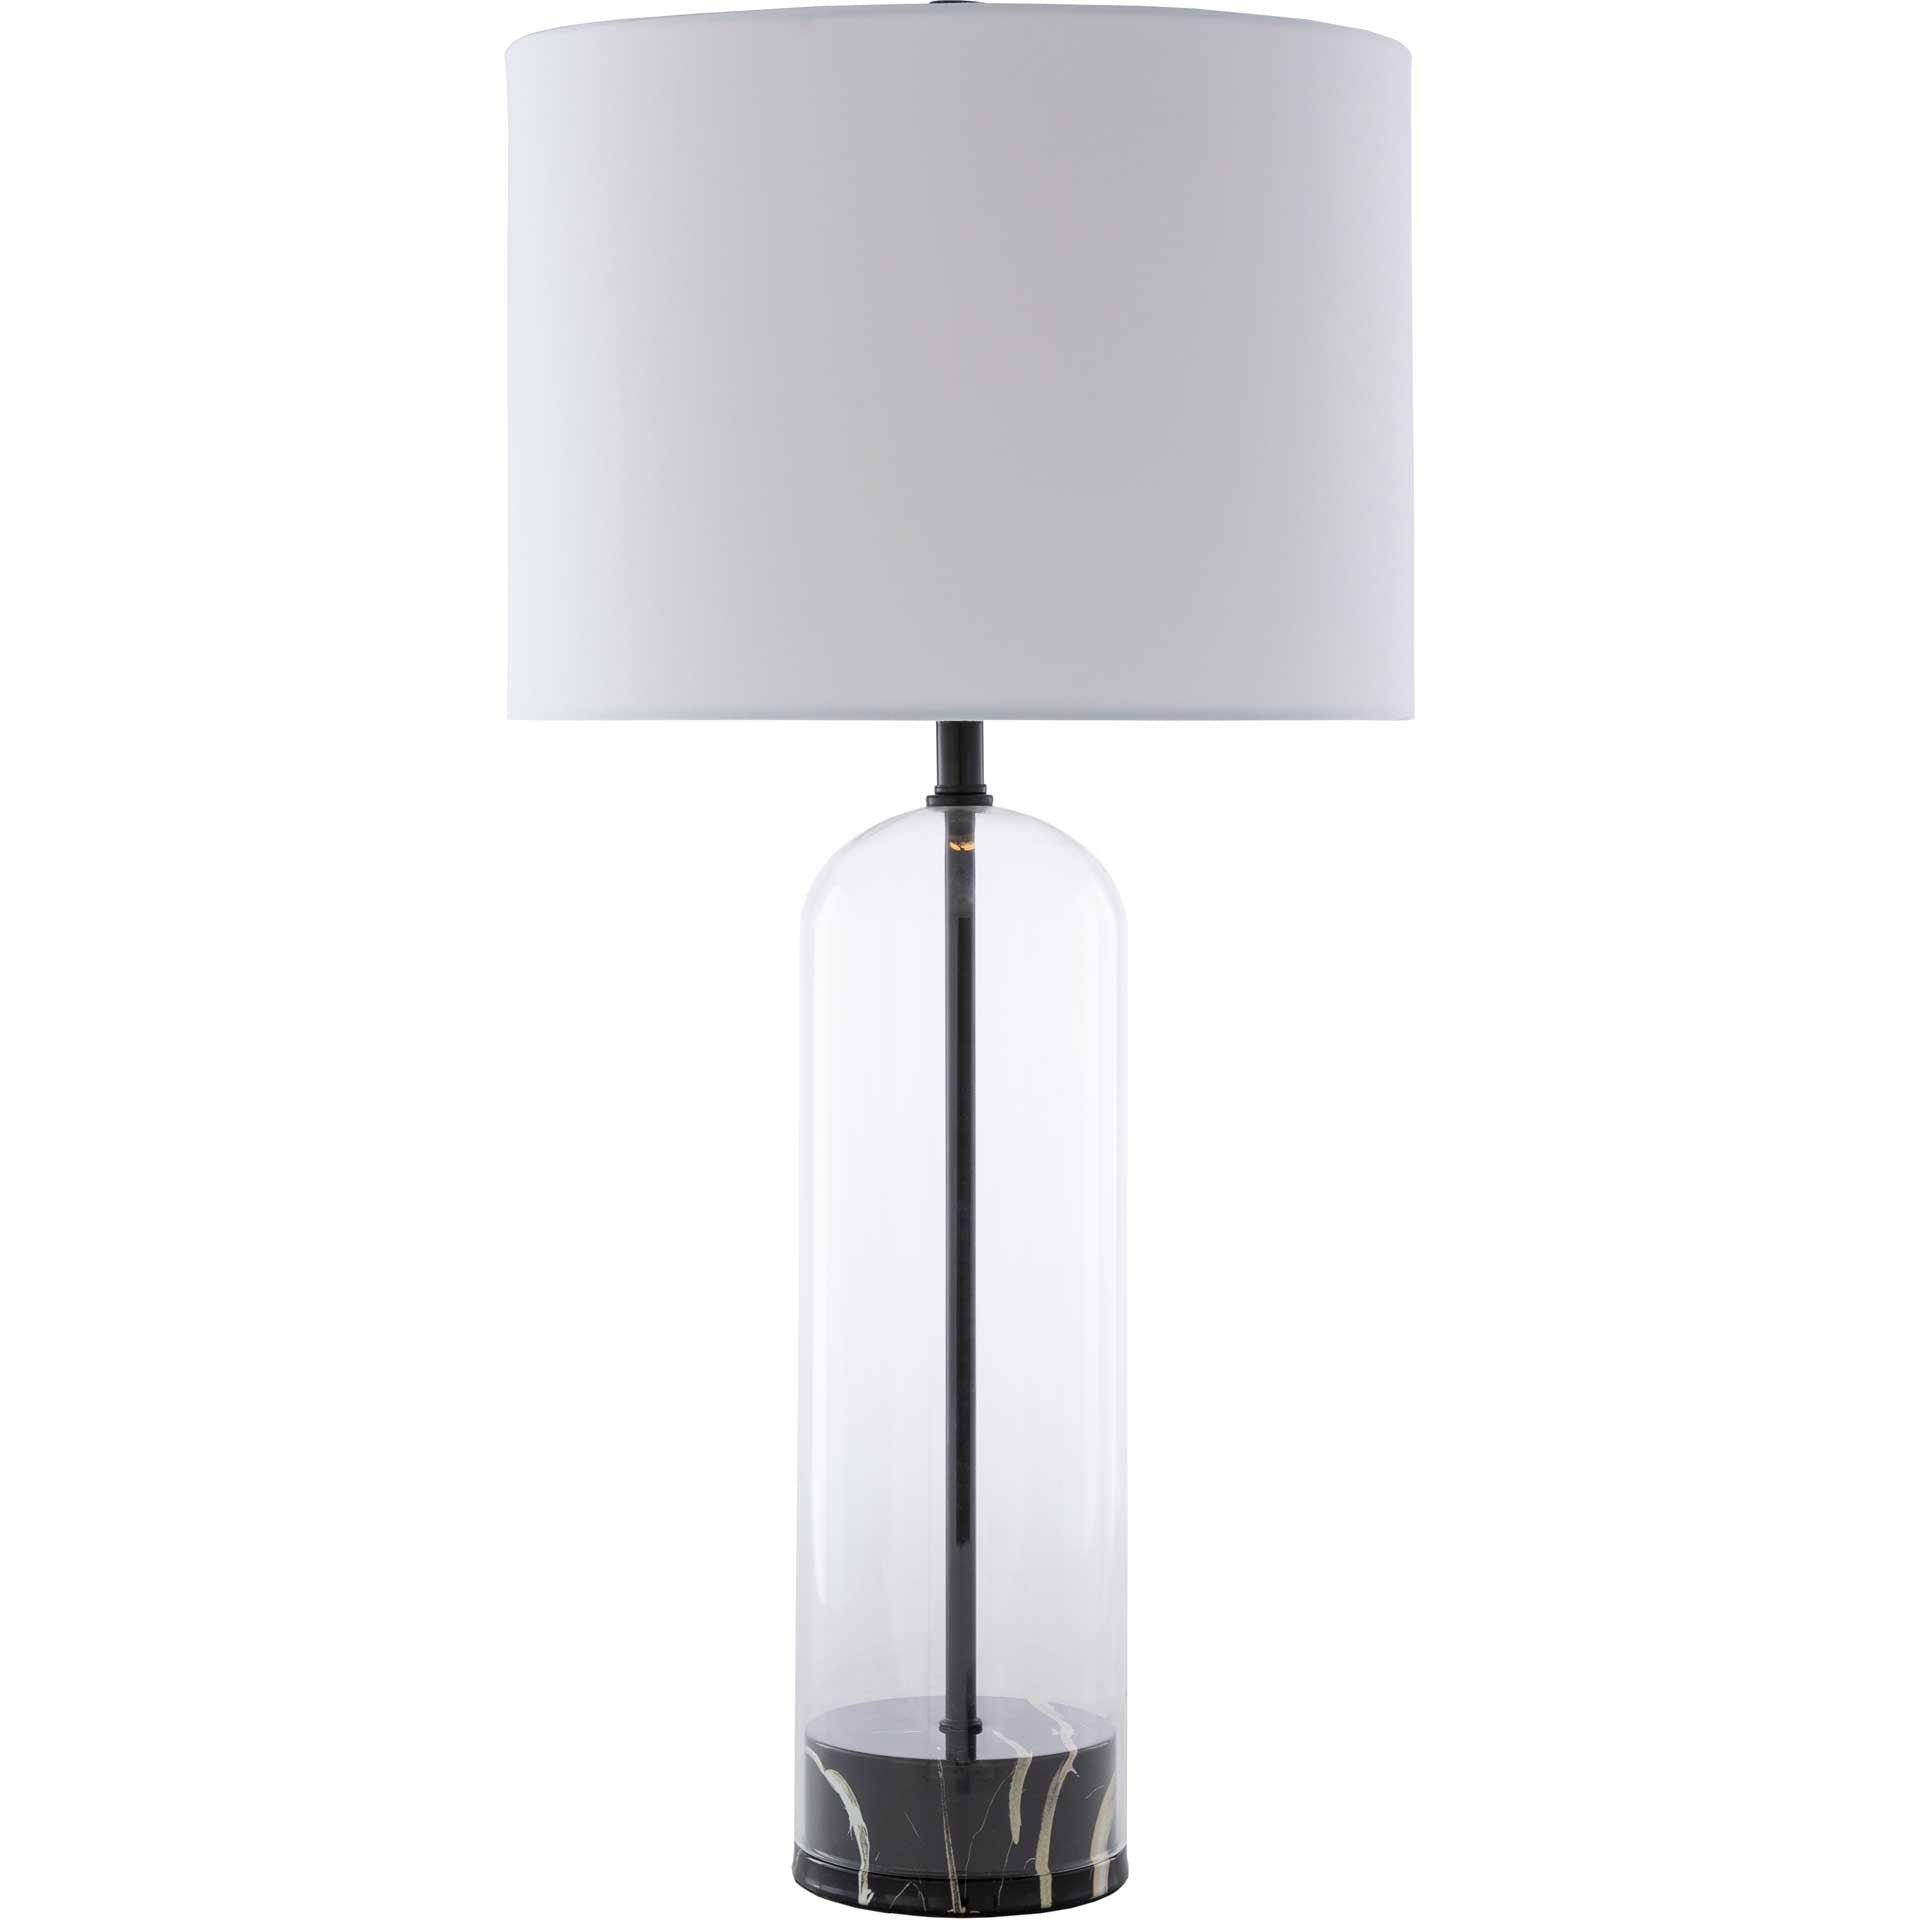 Carlos Table Lamp White/Black